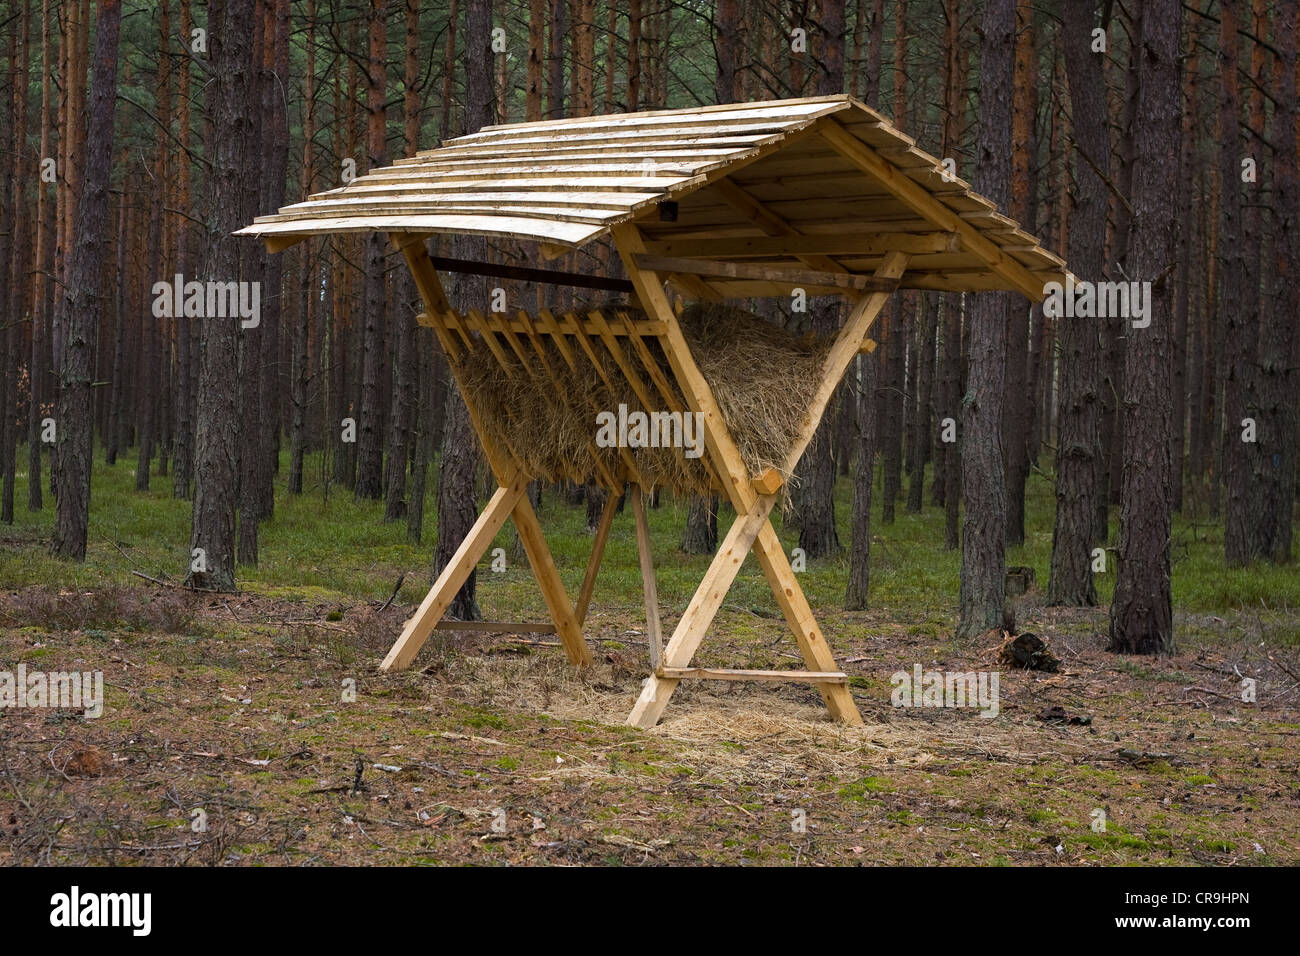 Animals feeder in forest - Stock Image